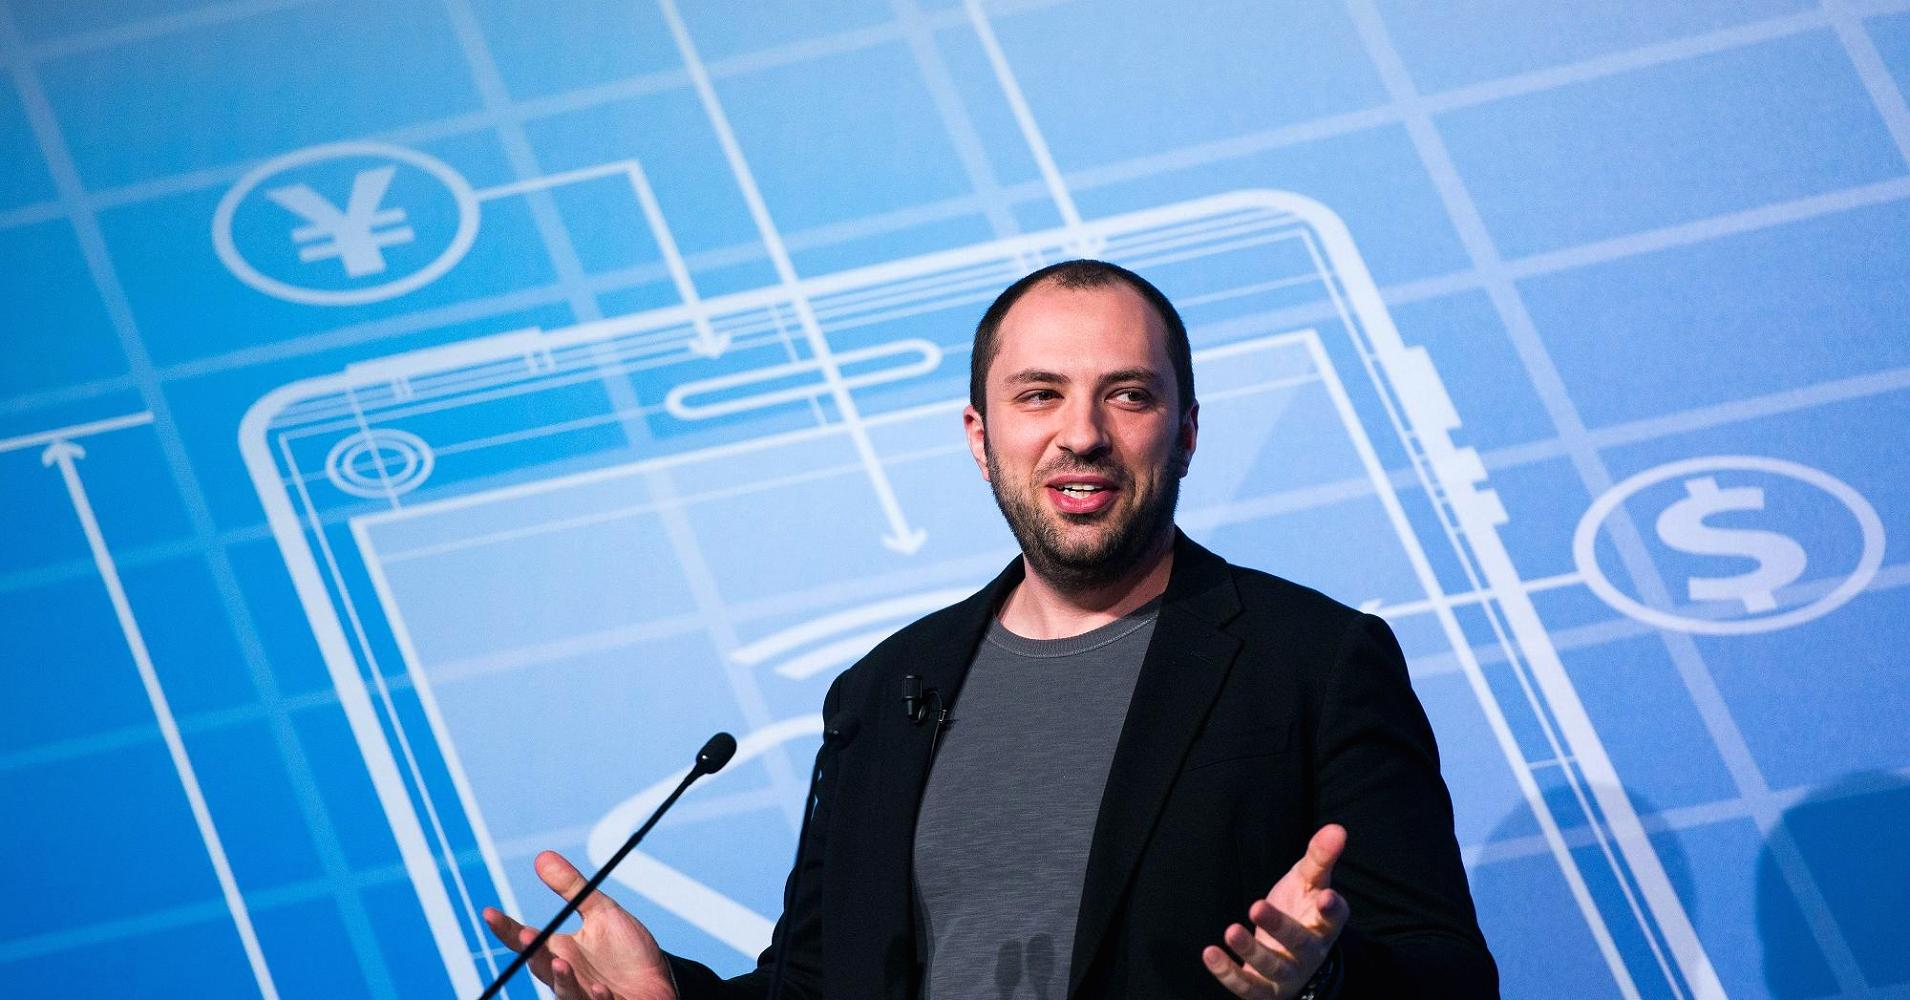 Jan Koum got the idea for $19 billion WhatsApp after missing too many iPhone calls at the gym